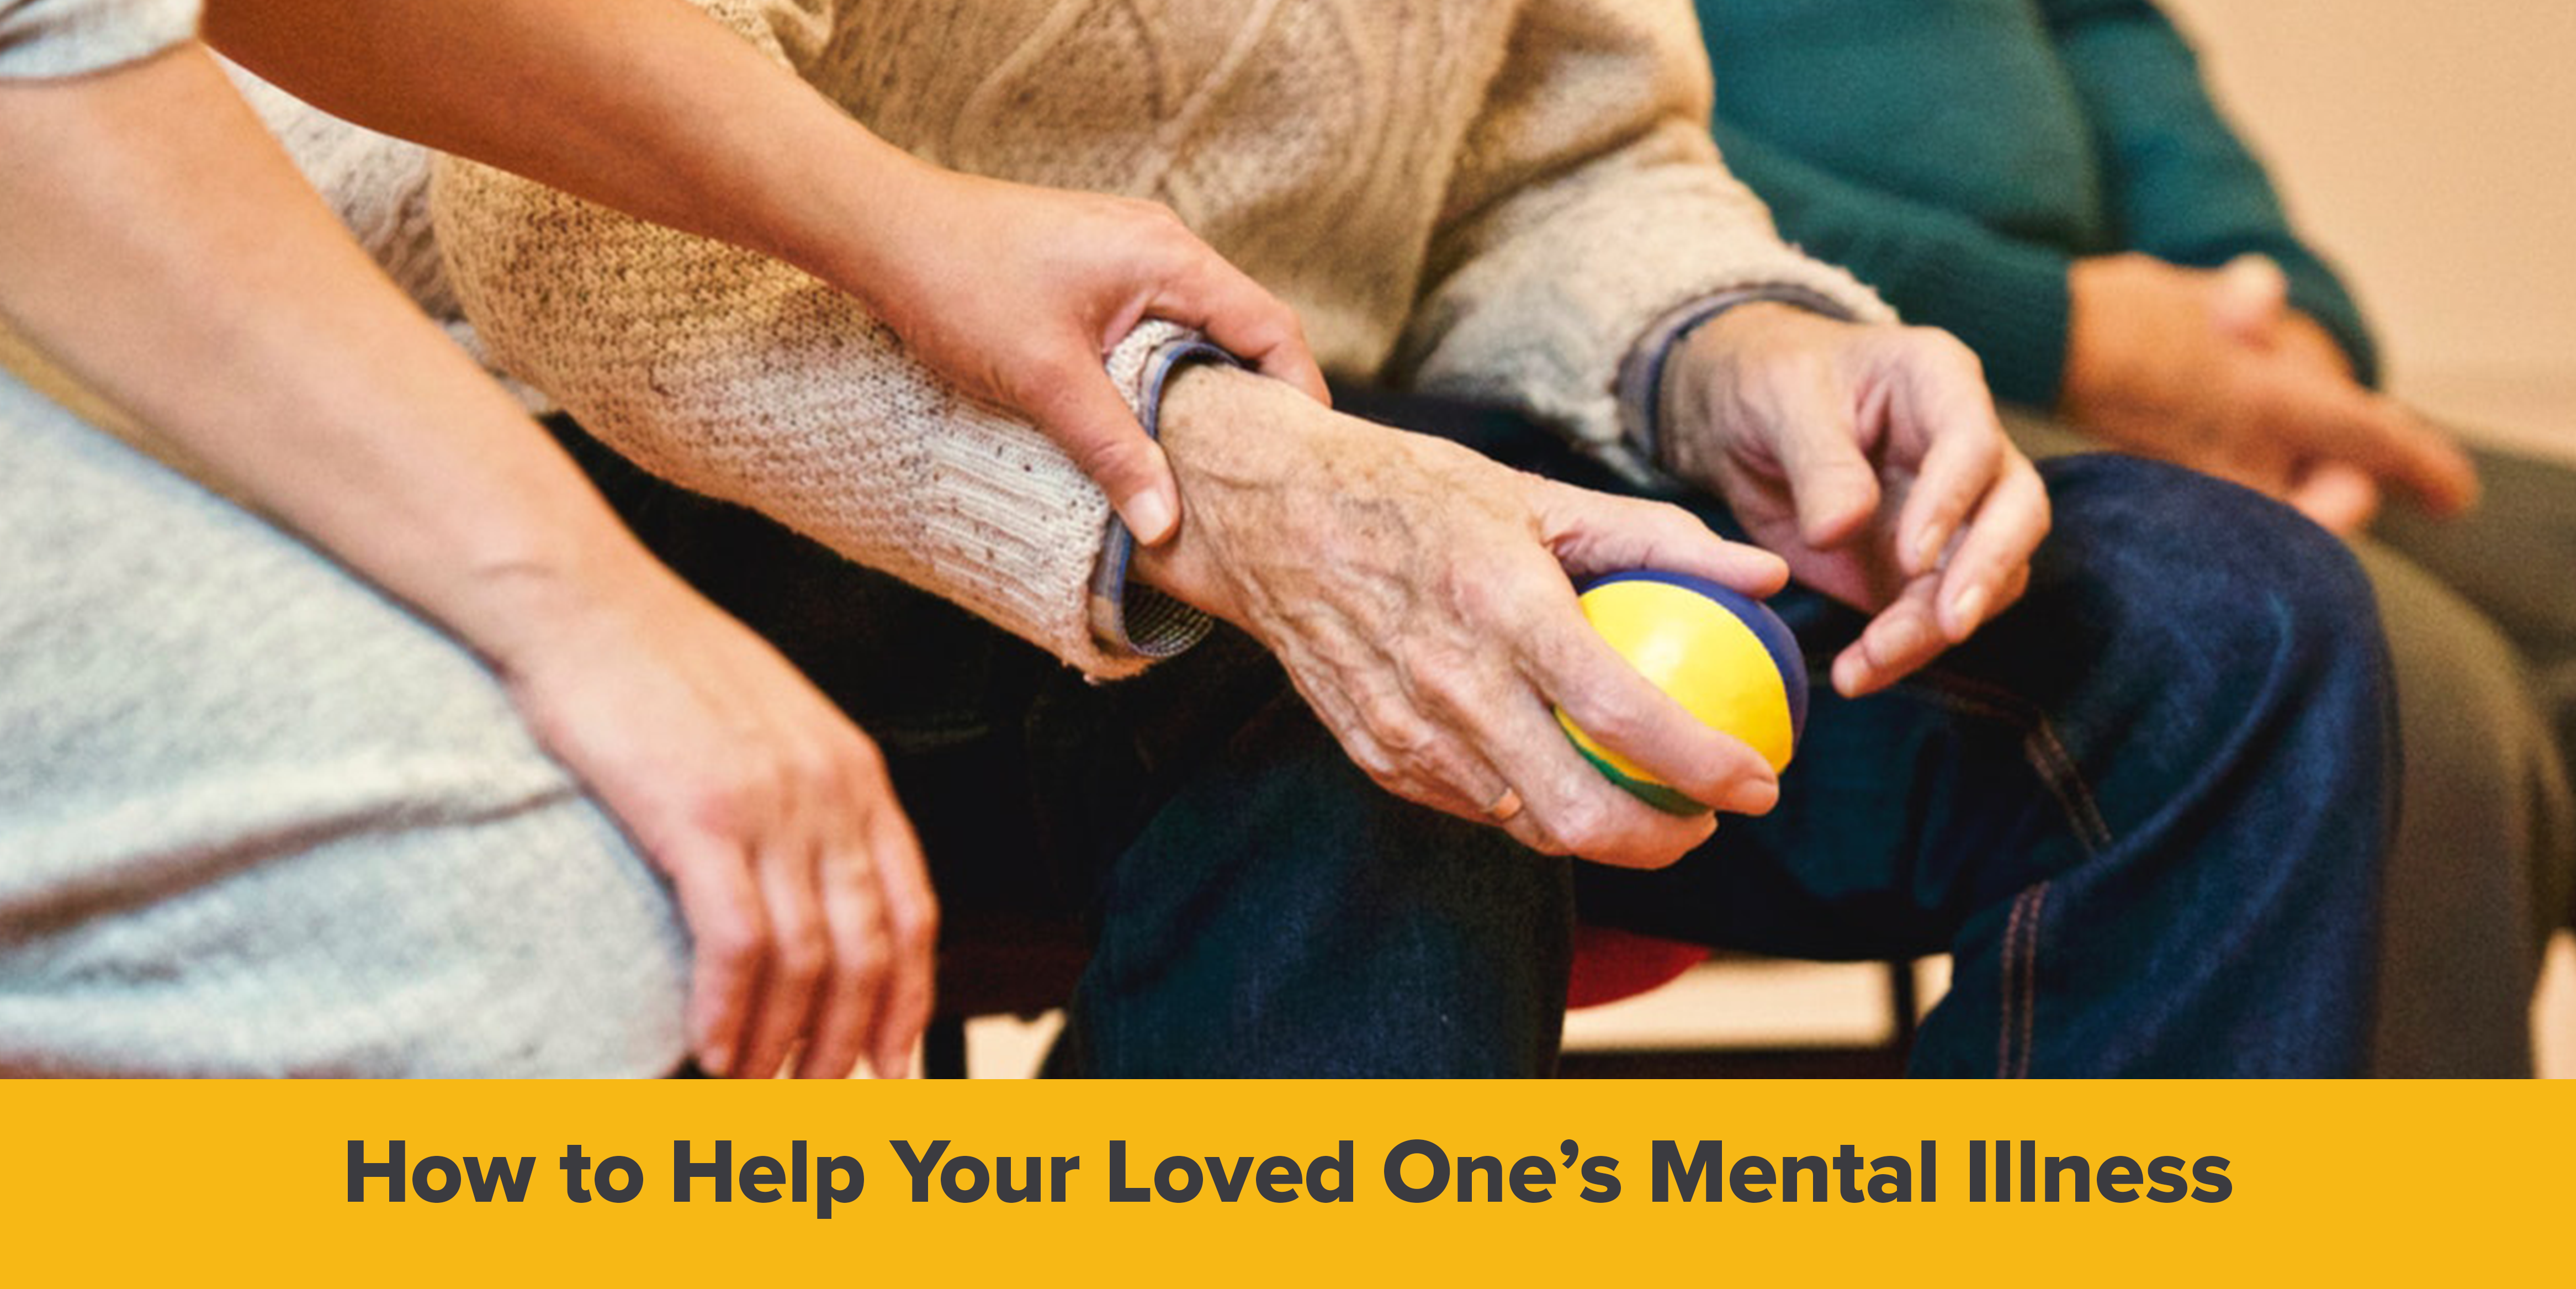 How to Help Your Loved One's Mental Illness